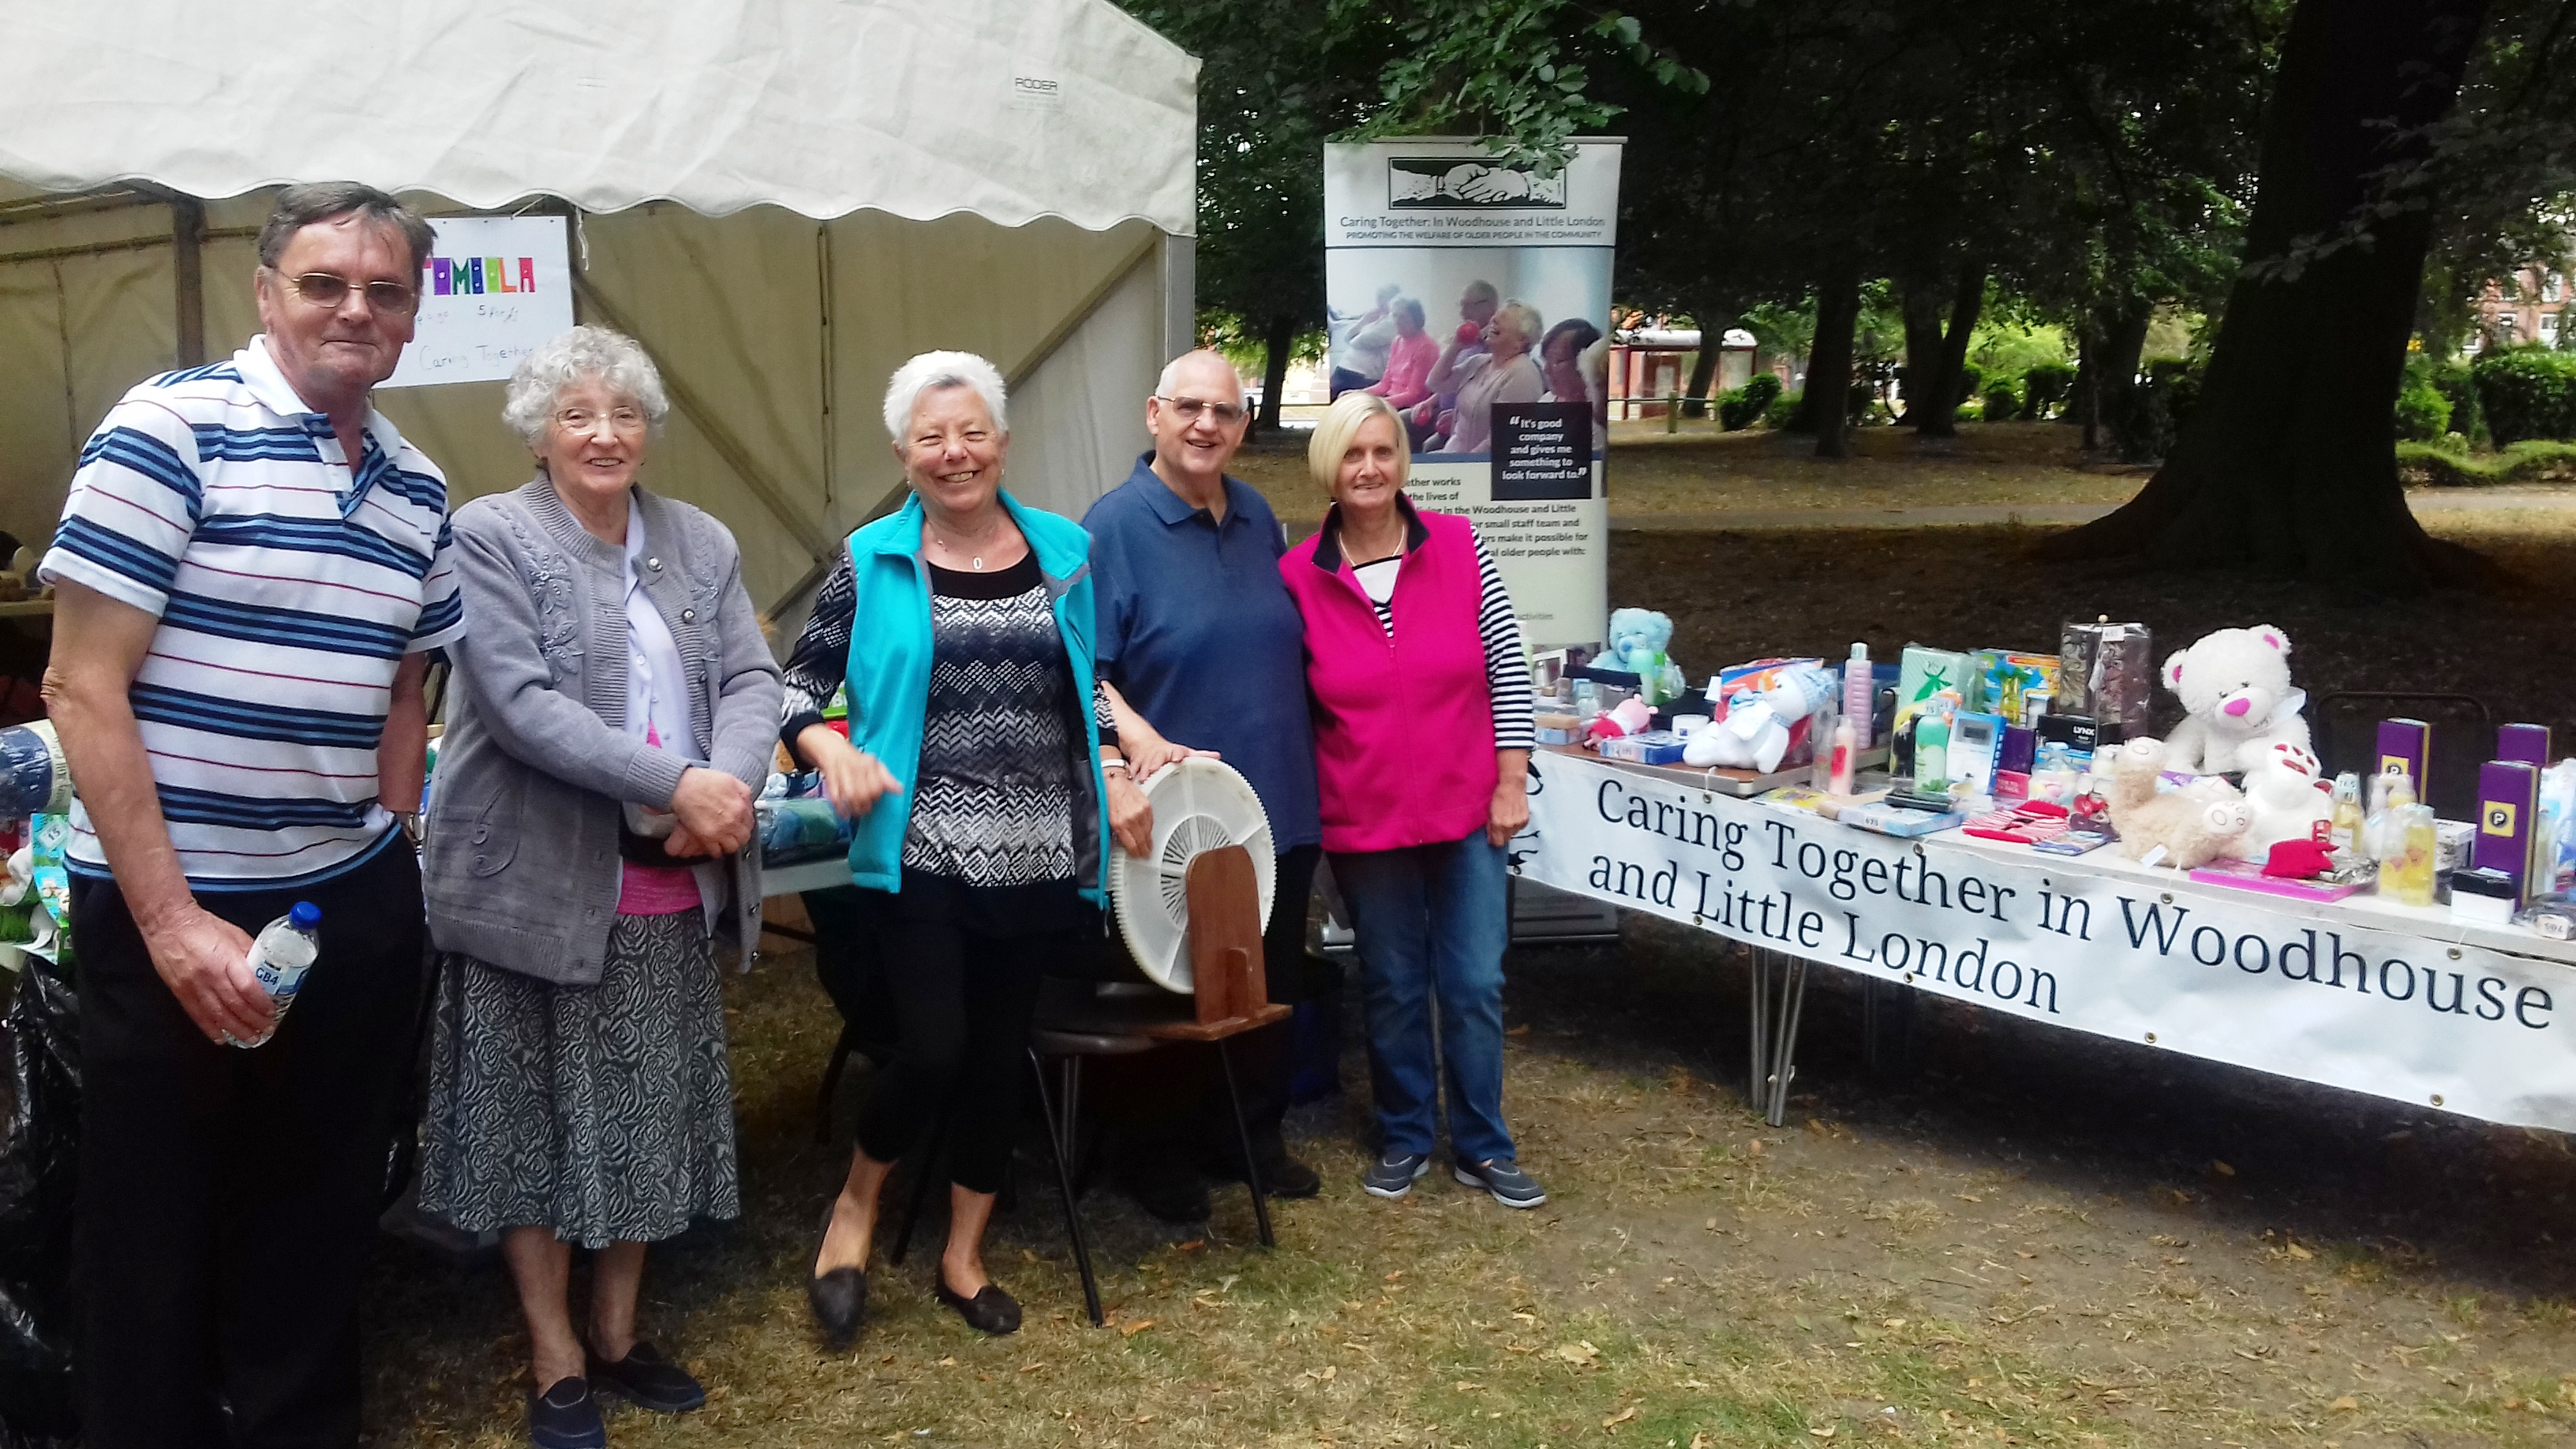 c2cd7ef8ed7 Caring Together had a Tombola and Hook a Bag stall once again at the Unity  Day in Hyde Park last Saturday. It was another fantastic community event.